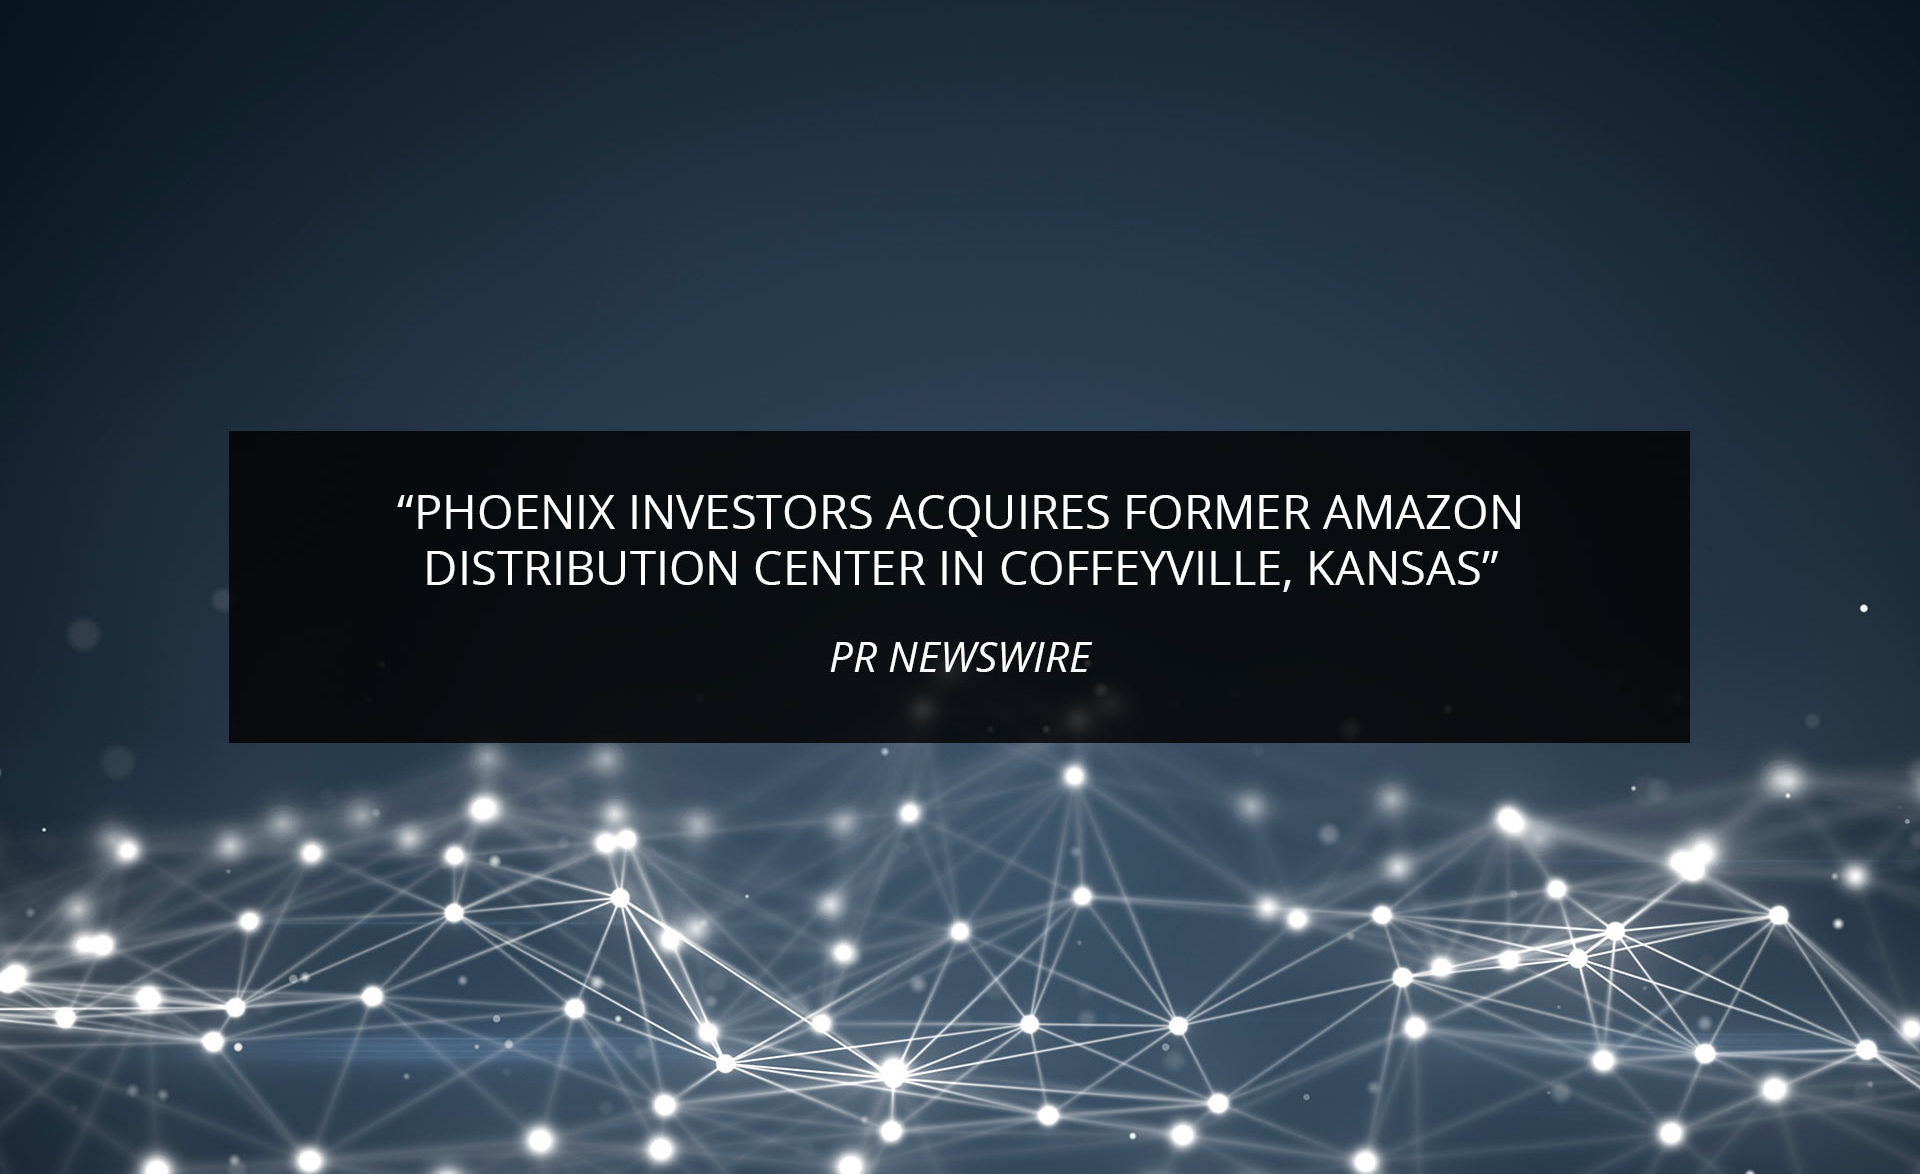 Coffeyville Press Release | Phoenix Investors